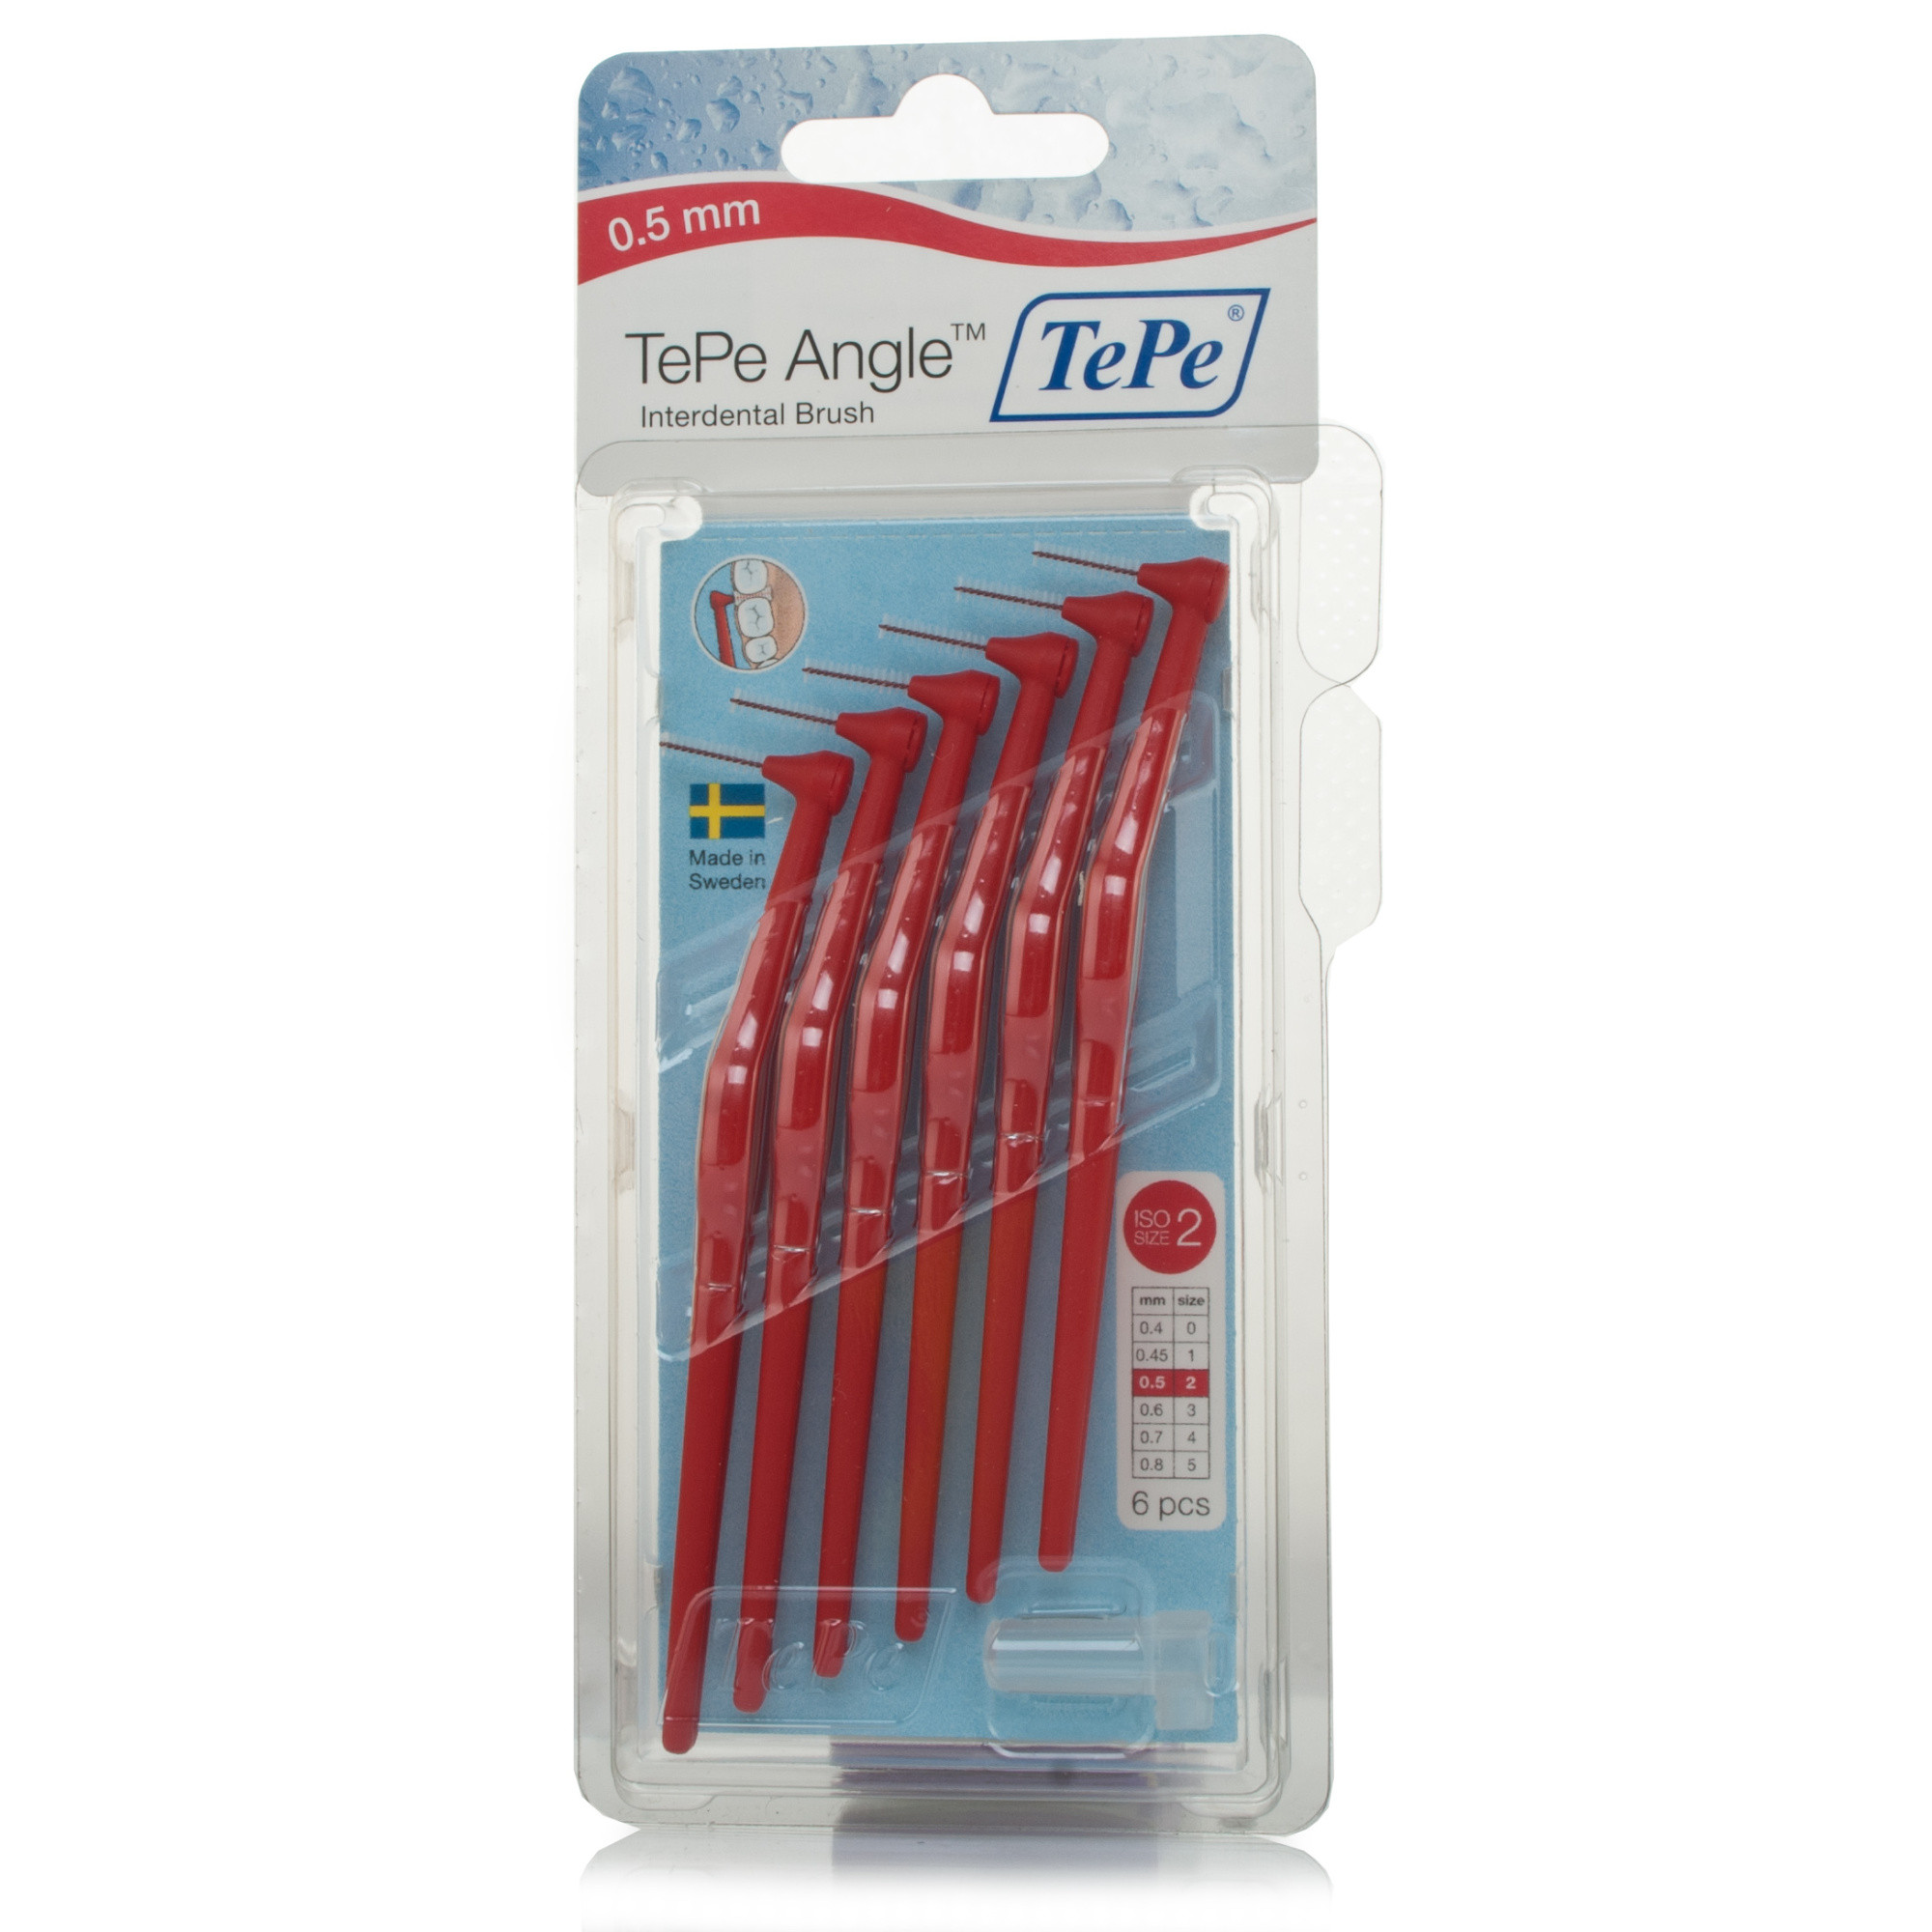 Tepe Angled Interdental Brush Red